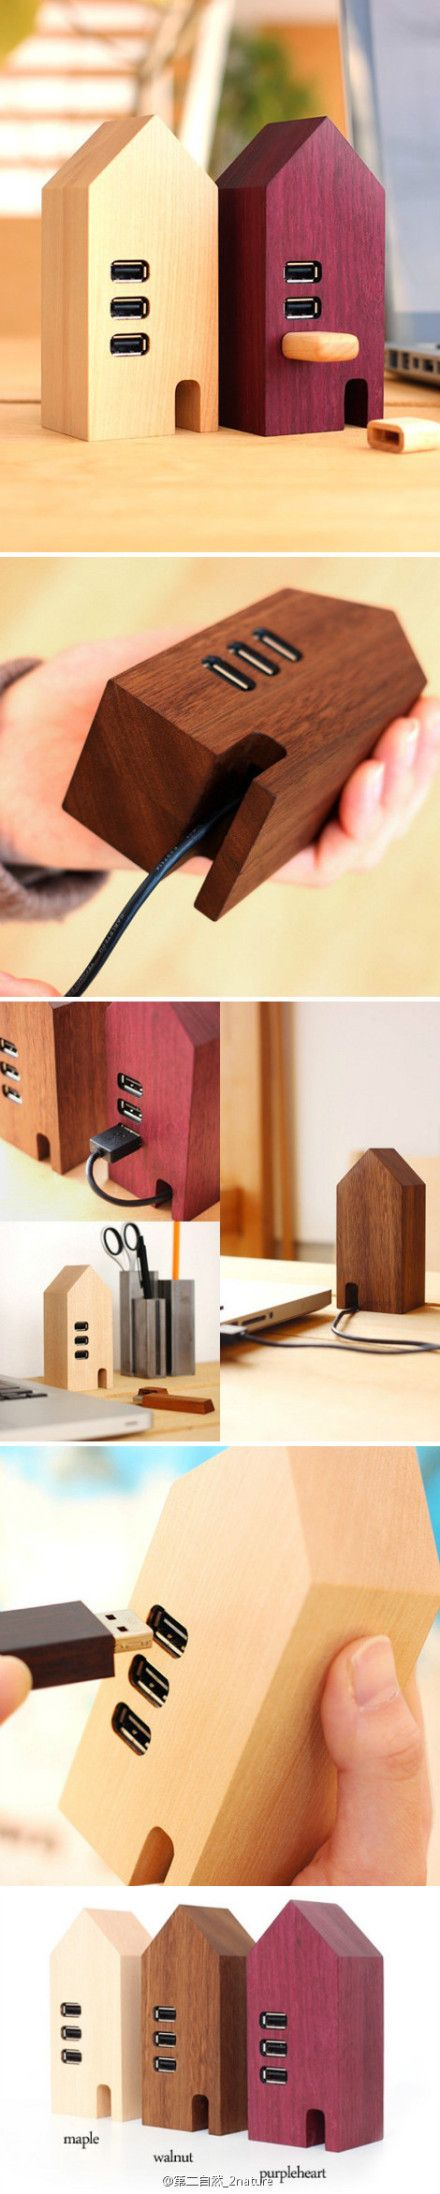 USB Hub House by Hacoa